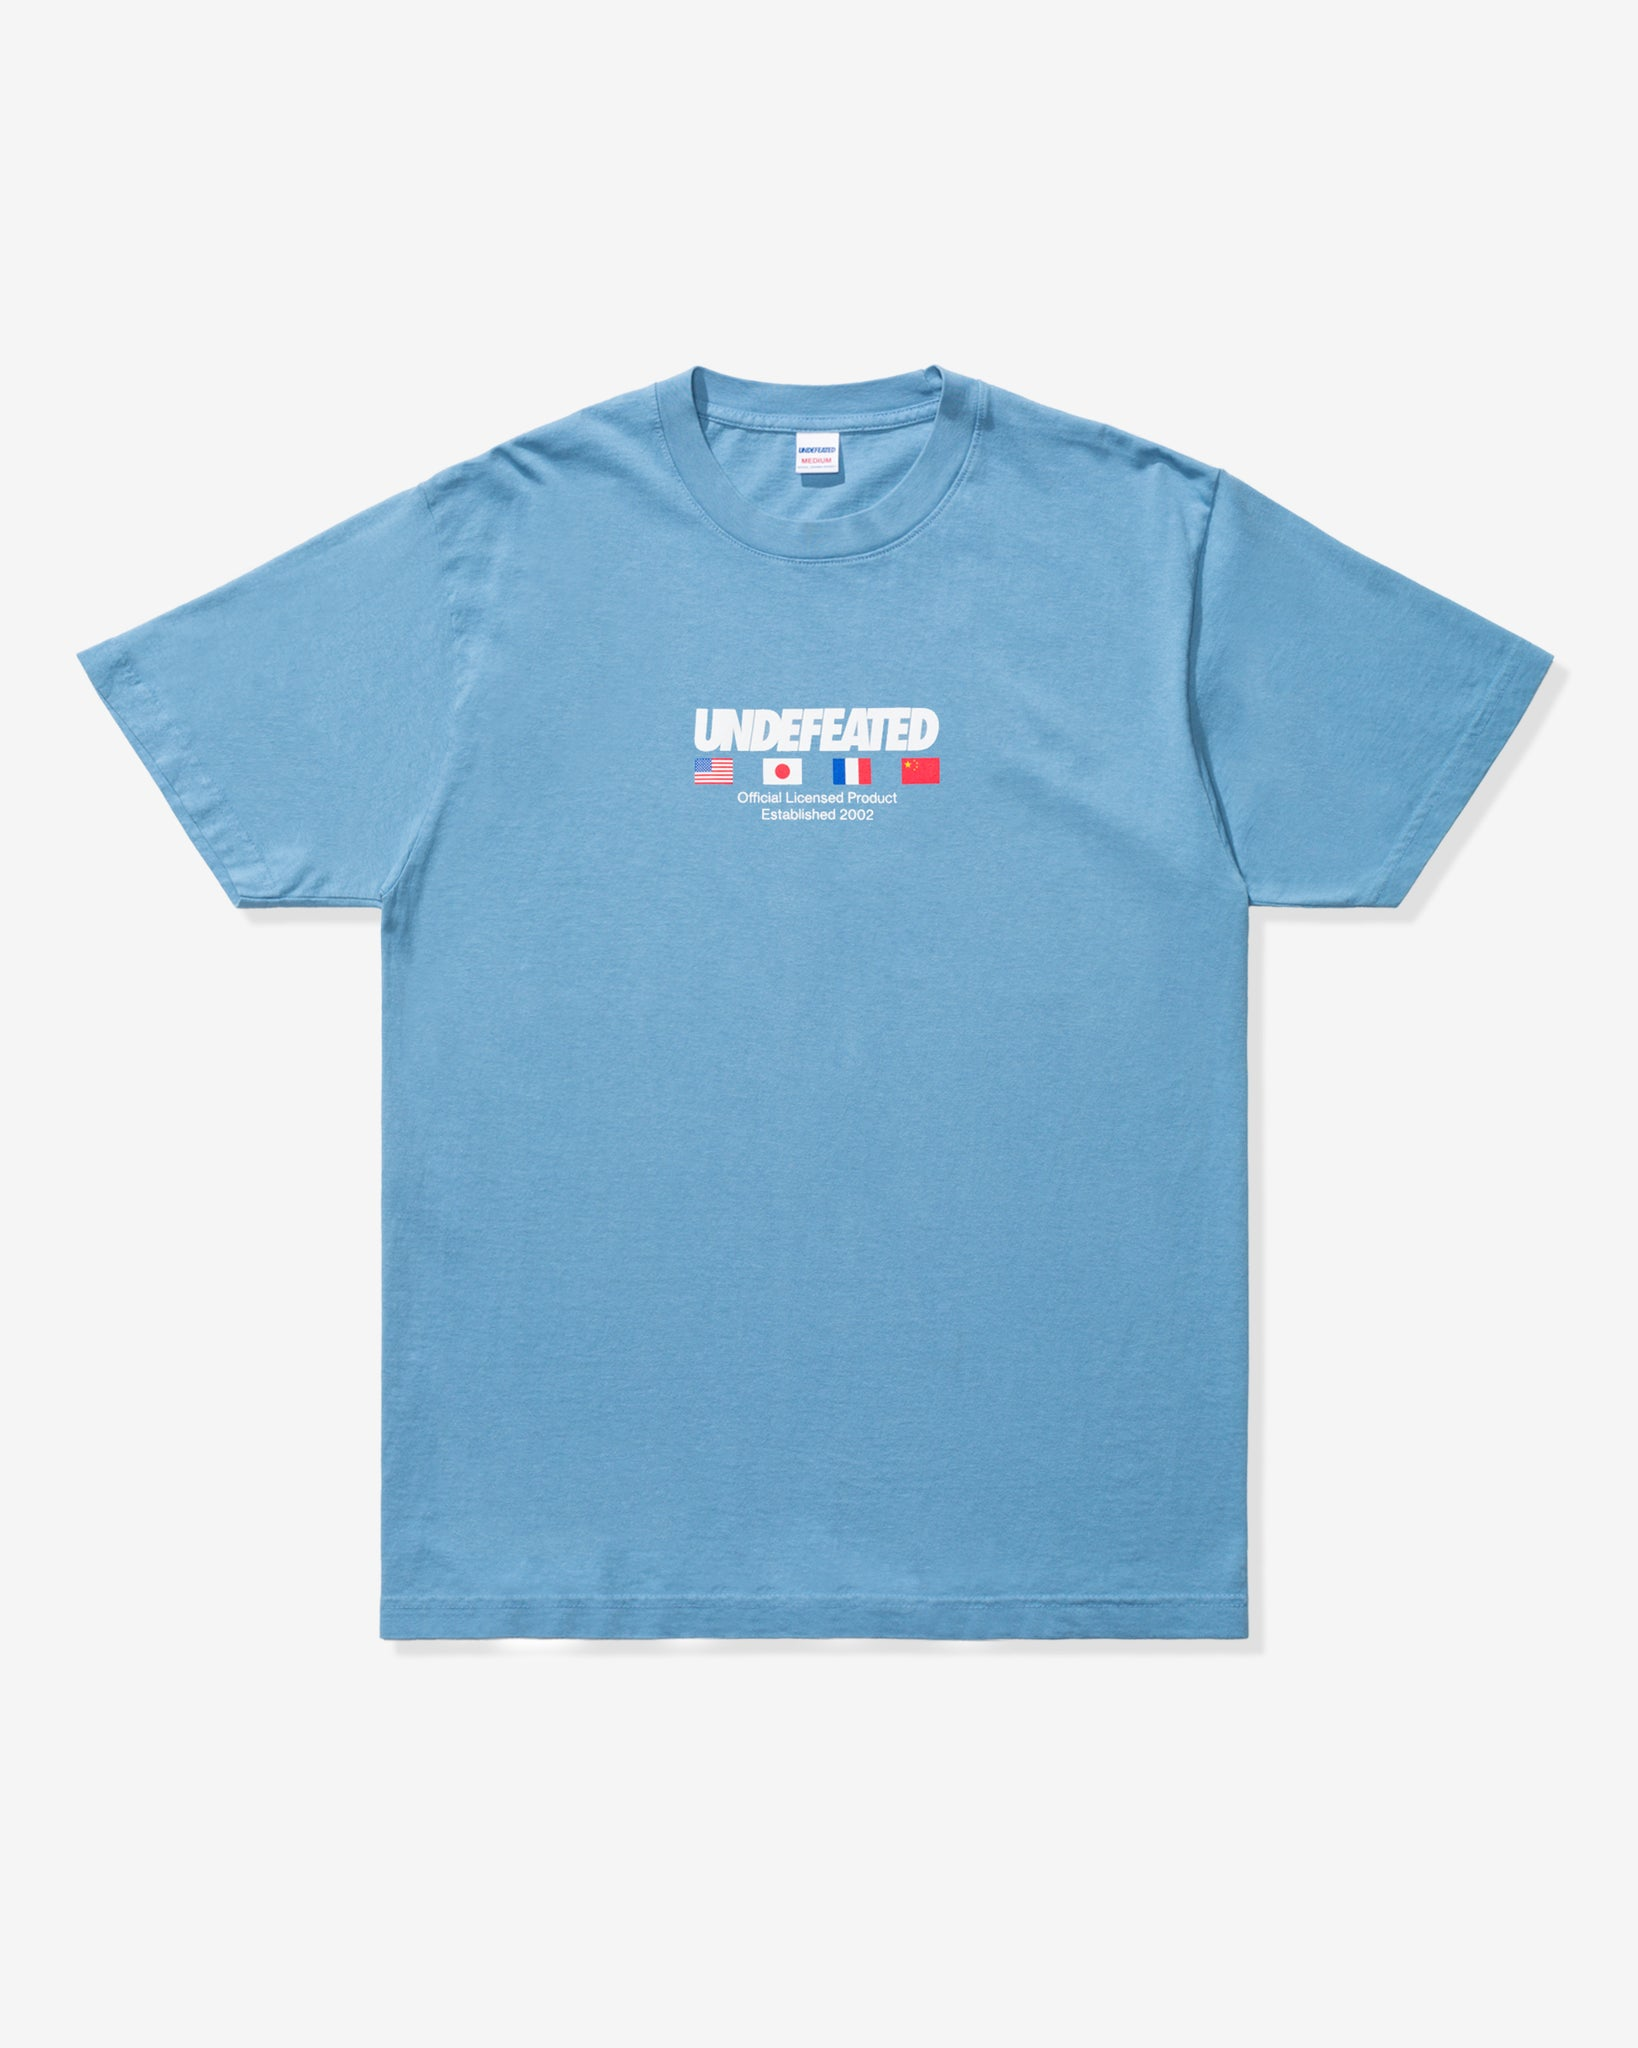 UNDEFEATED OFFICIAL FLAGS S/S TEE